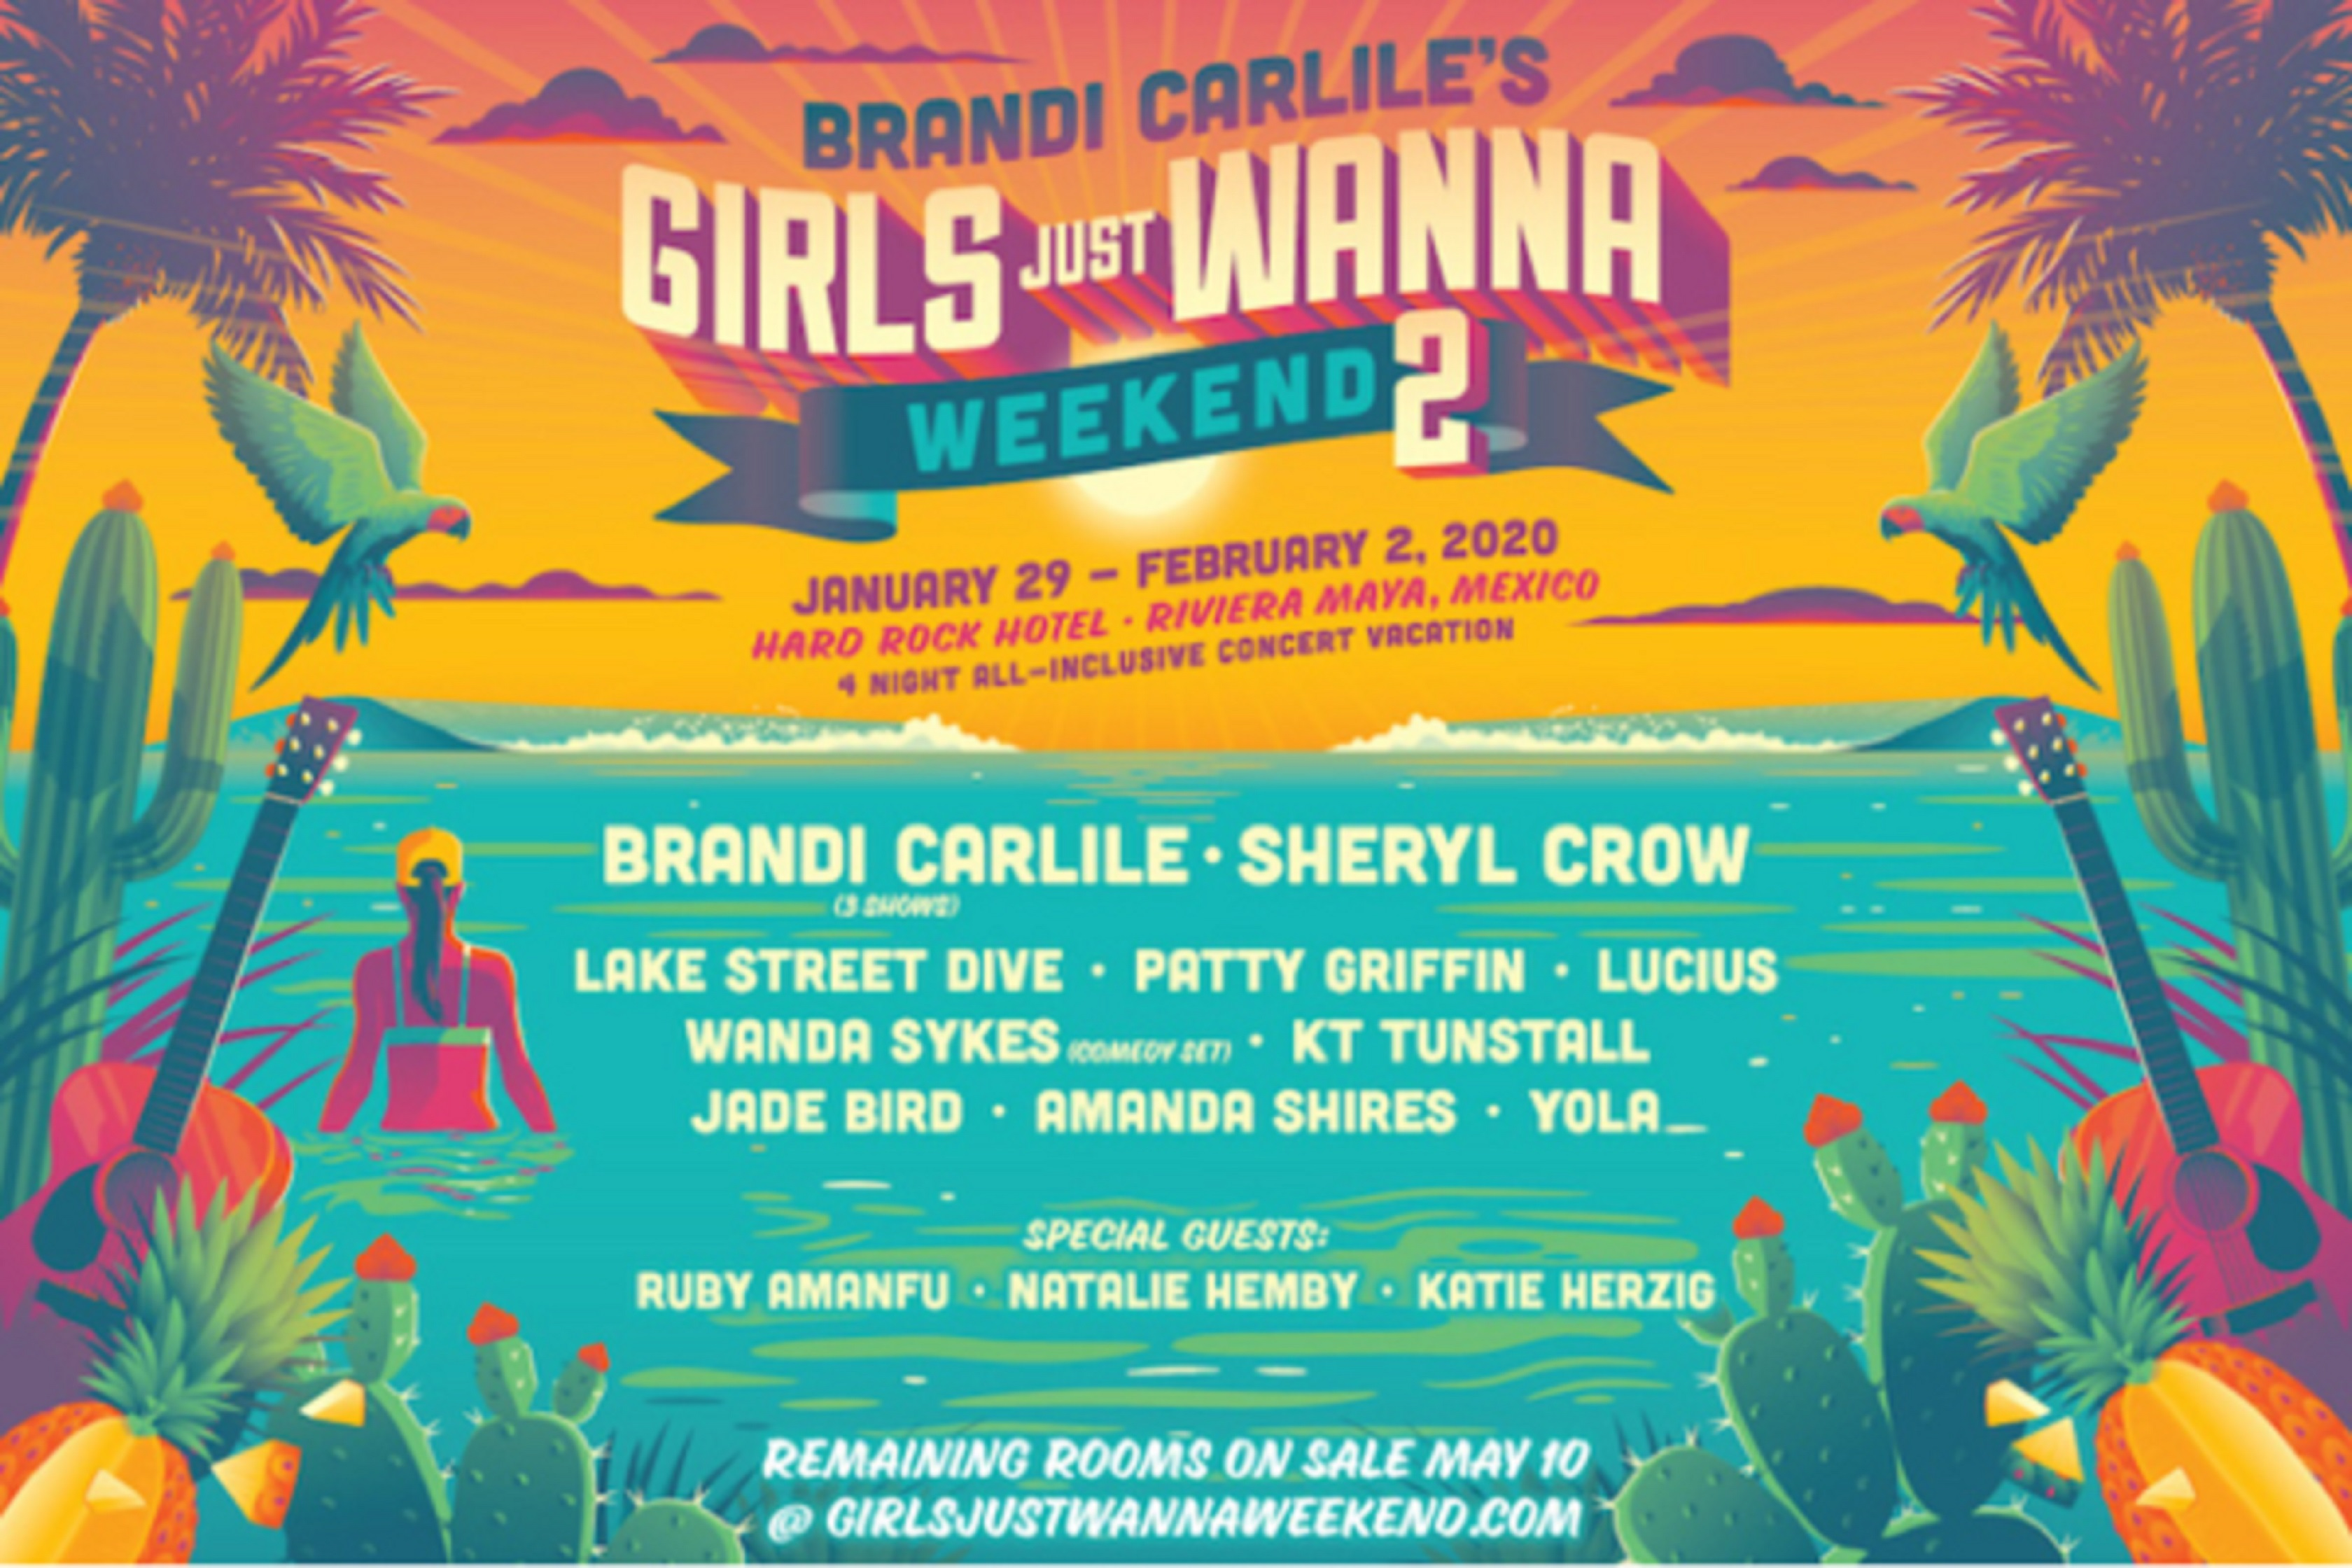 Brandi Carlile confirms 2nd annual Girls Just Wanna Weekend lineup